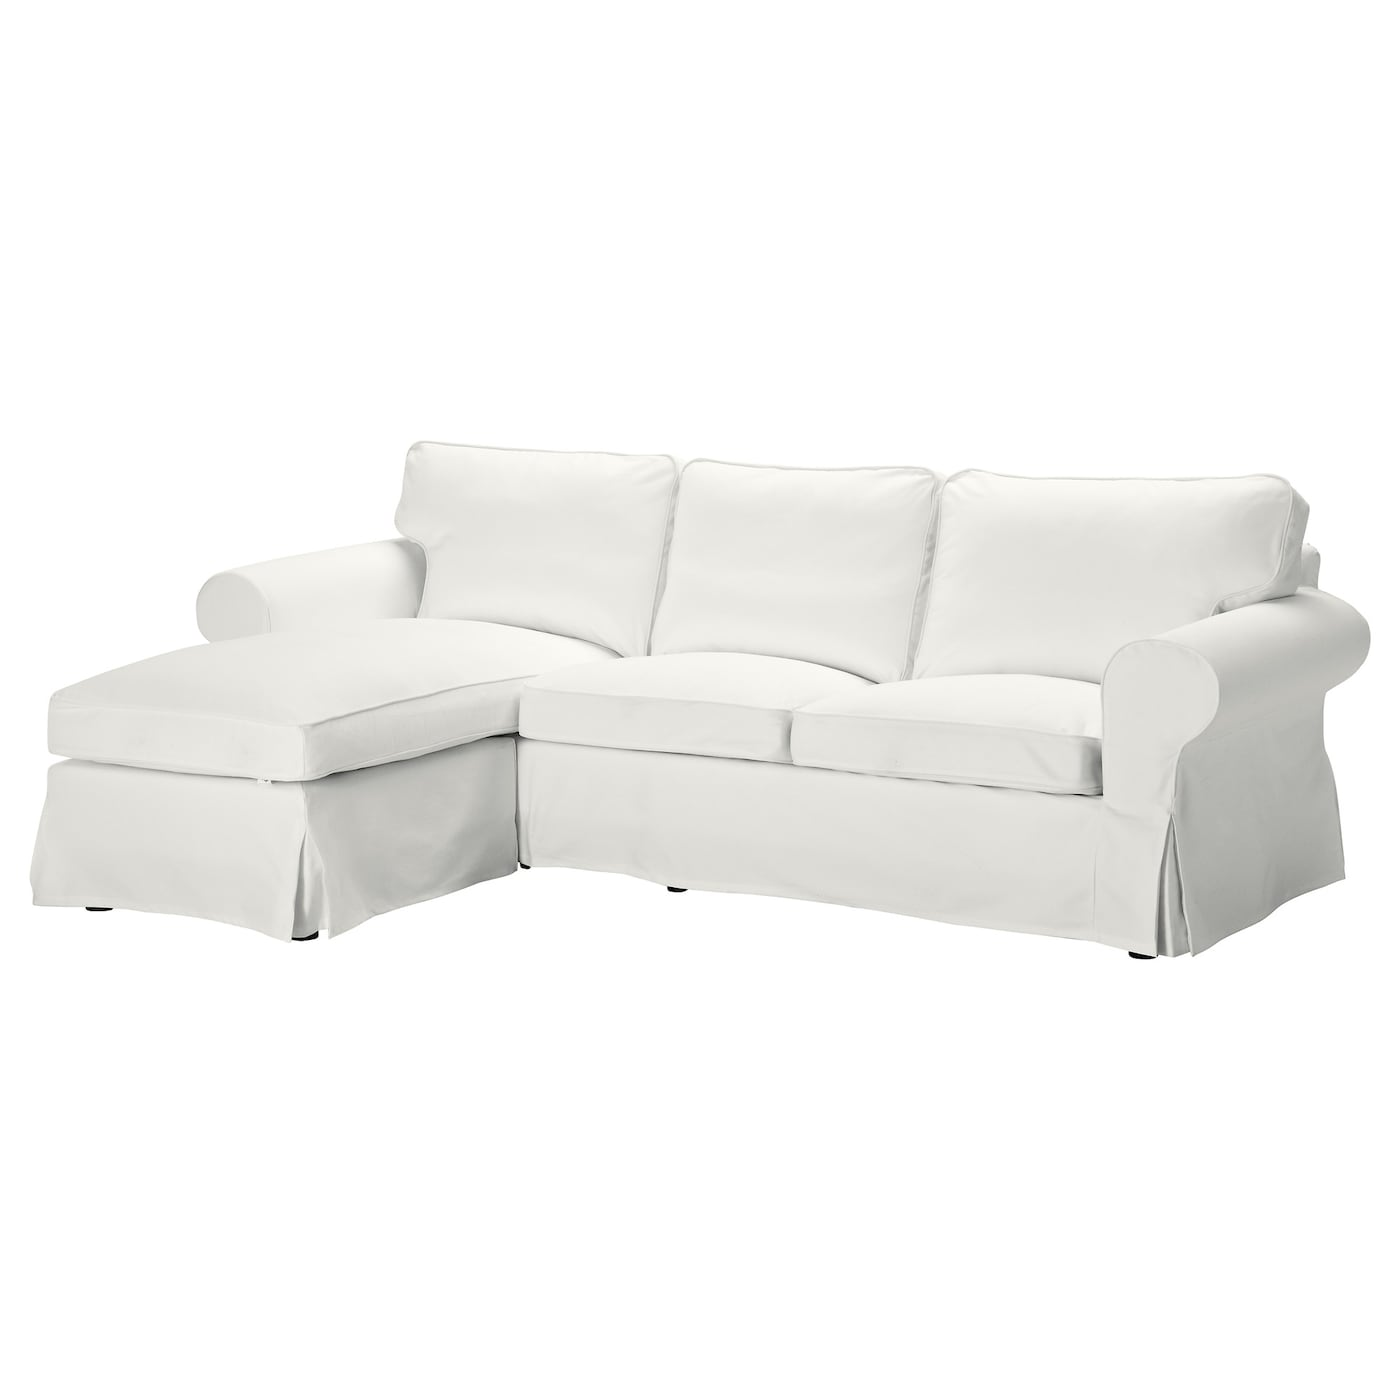 Ektorp two seat sofa and chaise longue blekinge white ikea for Chaise and ottoman